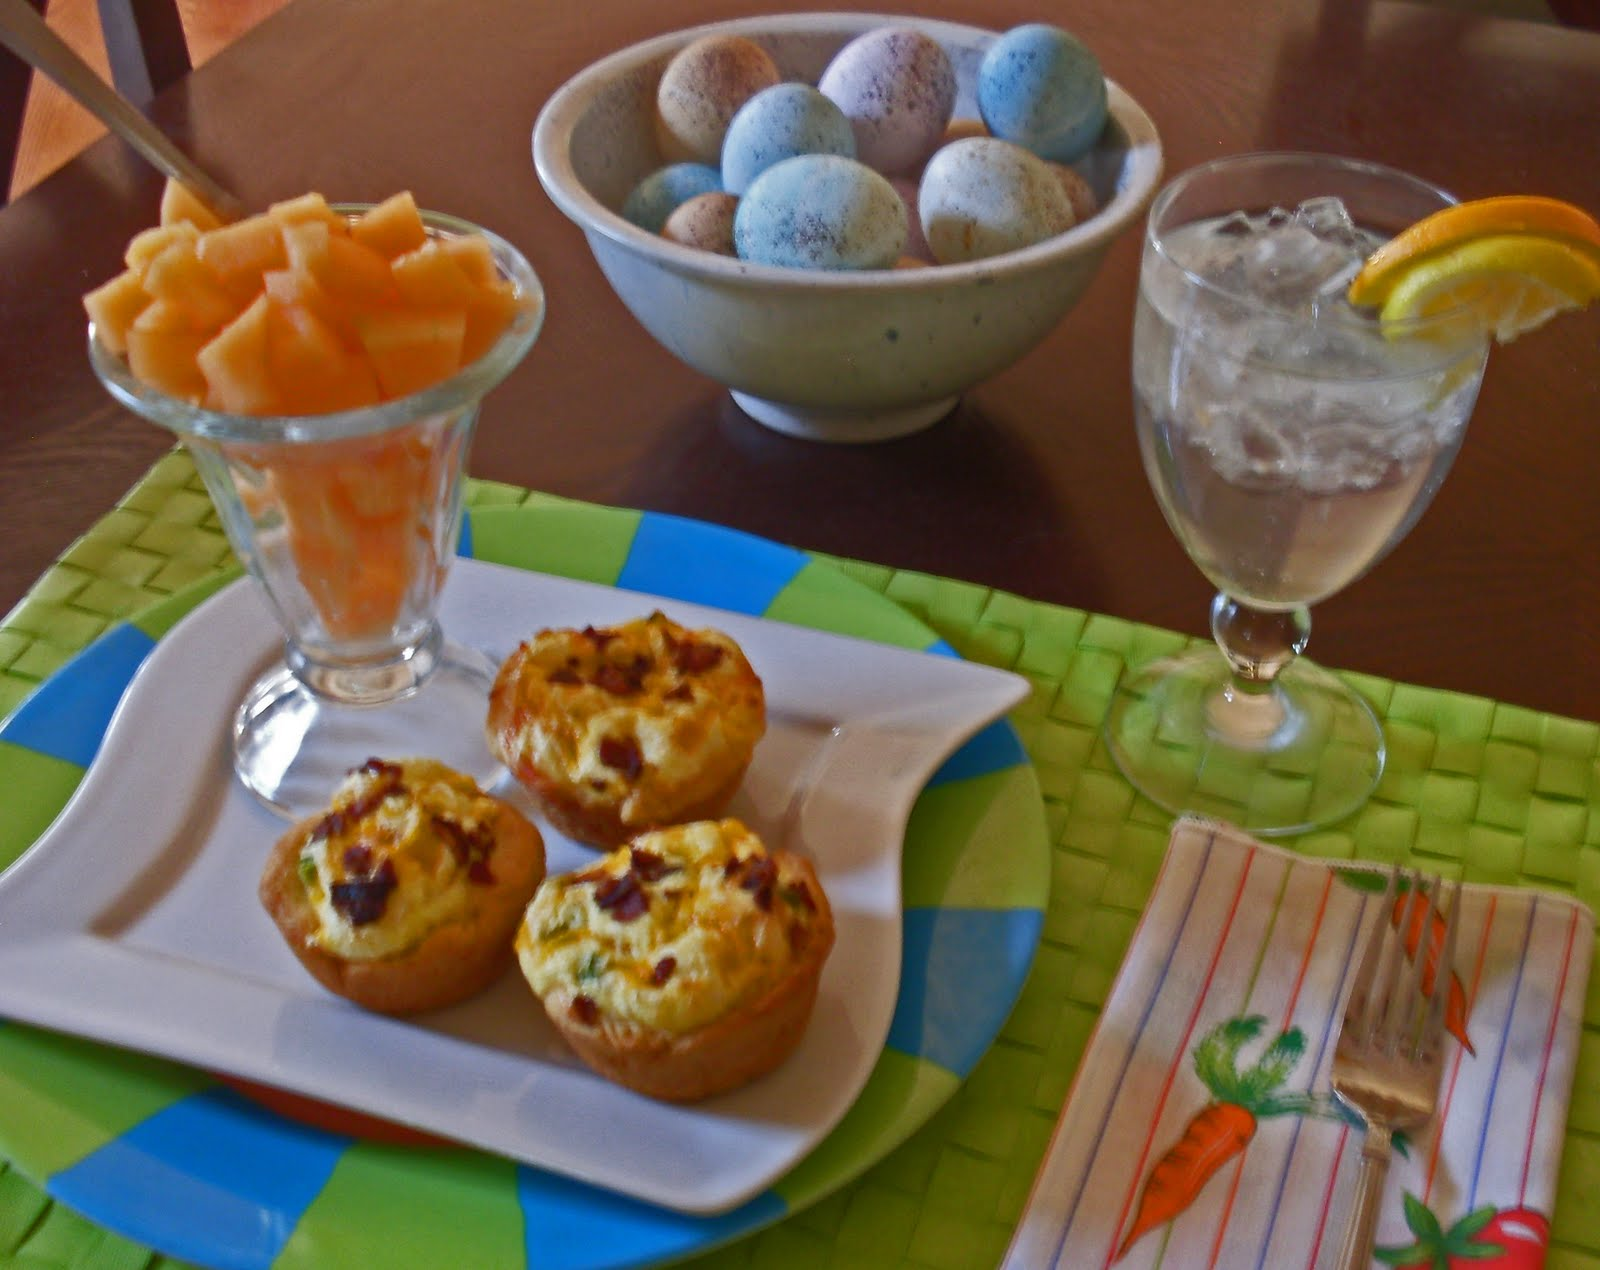 At Home 'n About: Bacon Quiche Tarts on Easter Morning